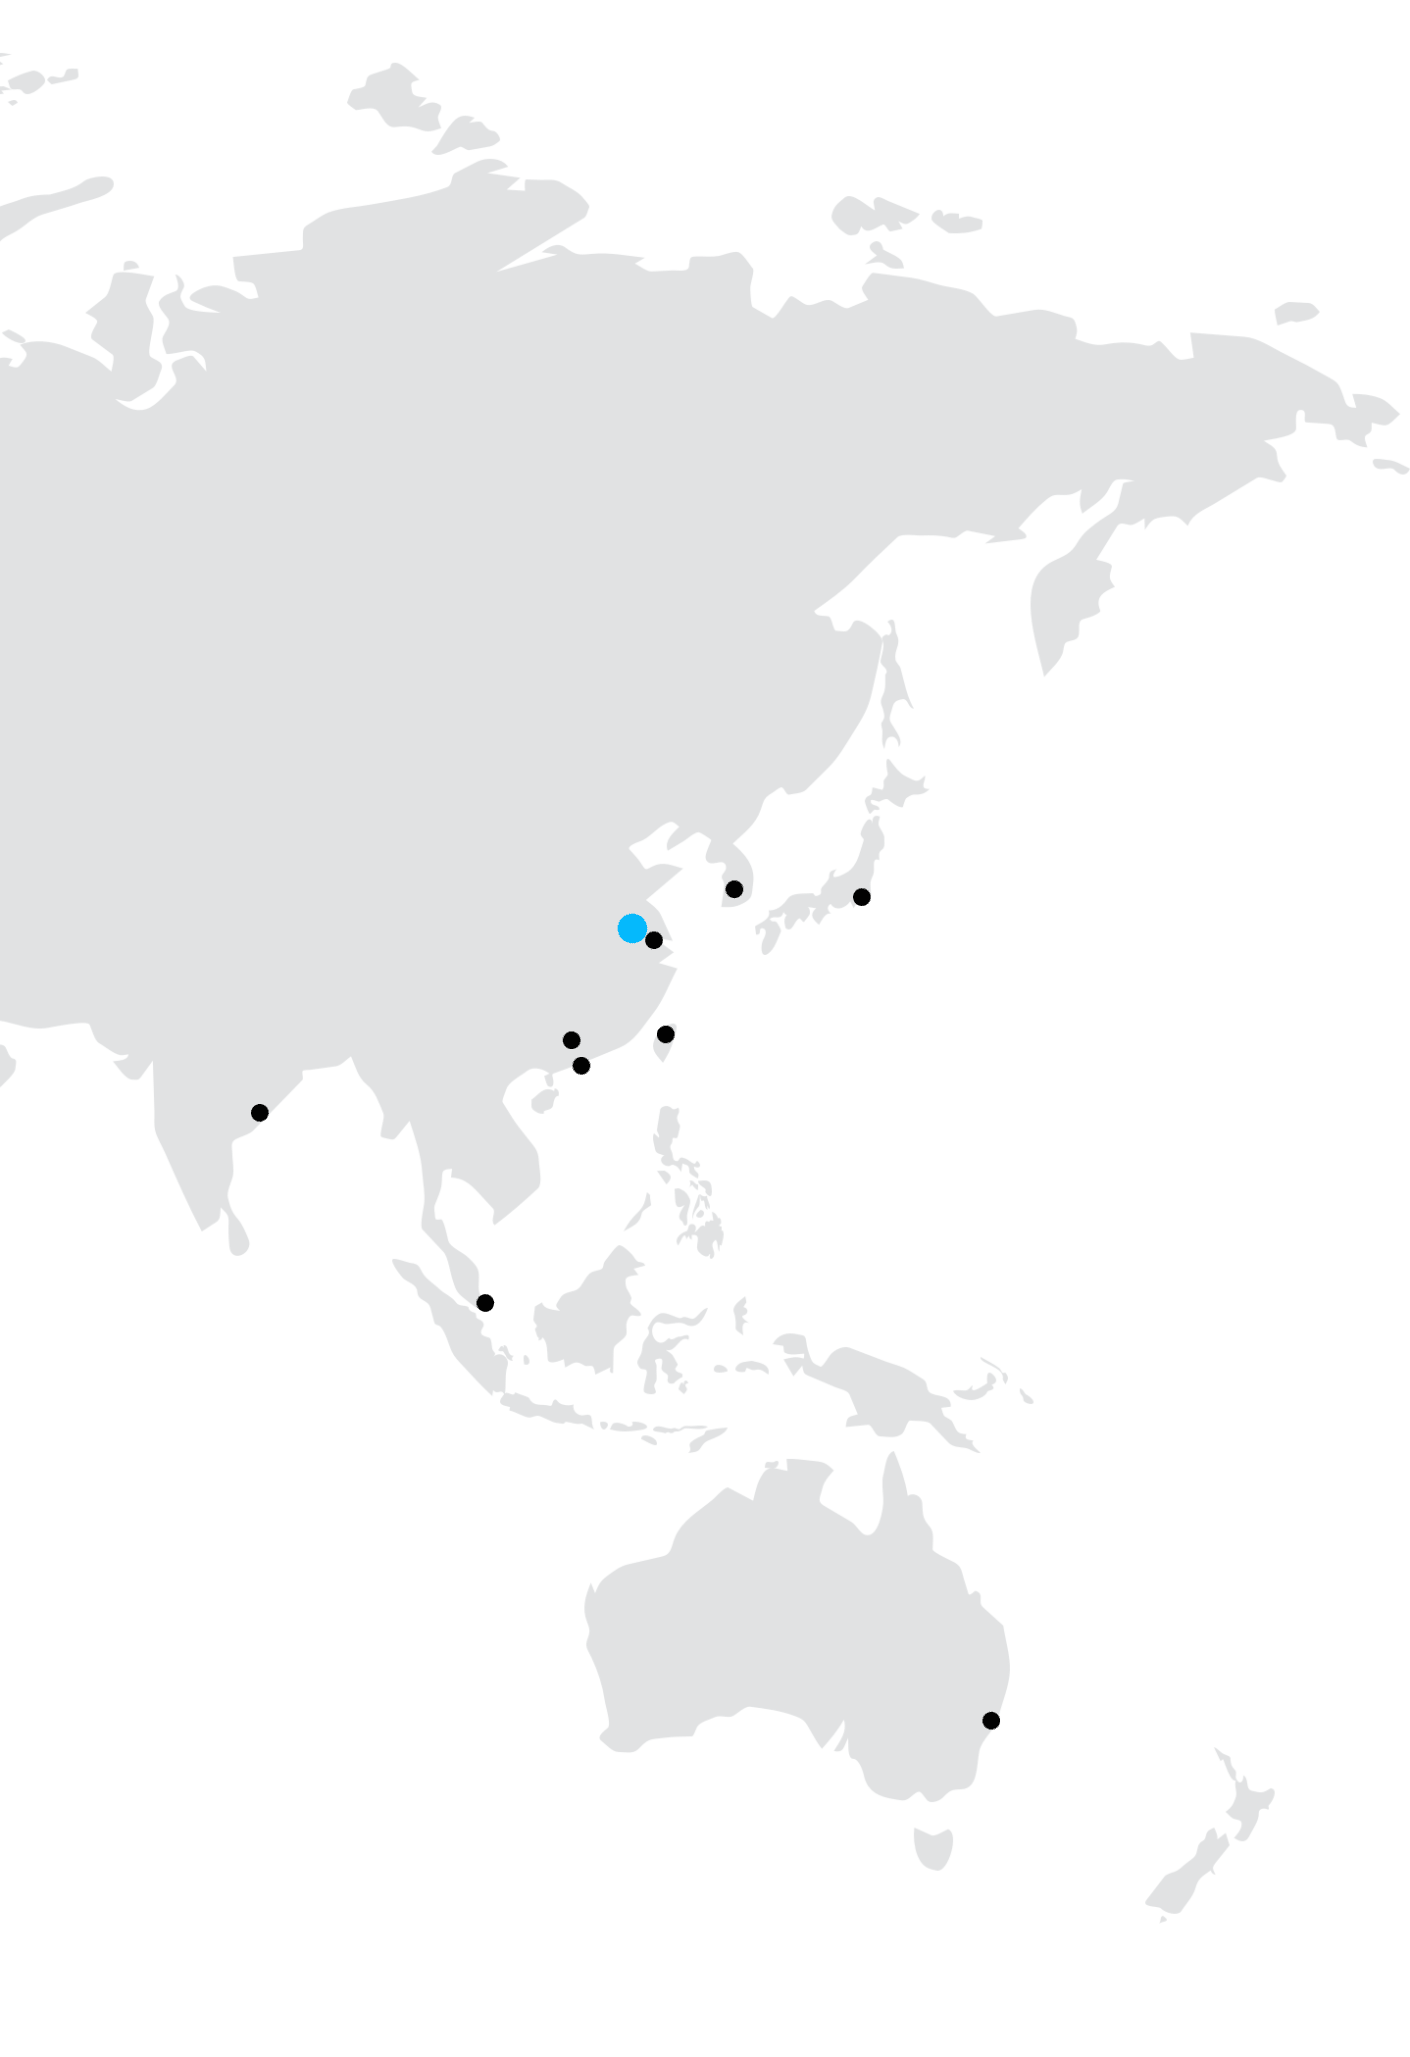 Asia and Oceania map